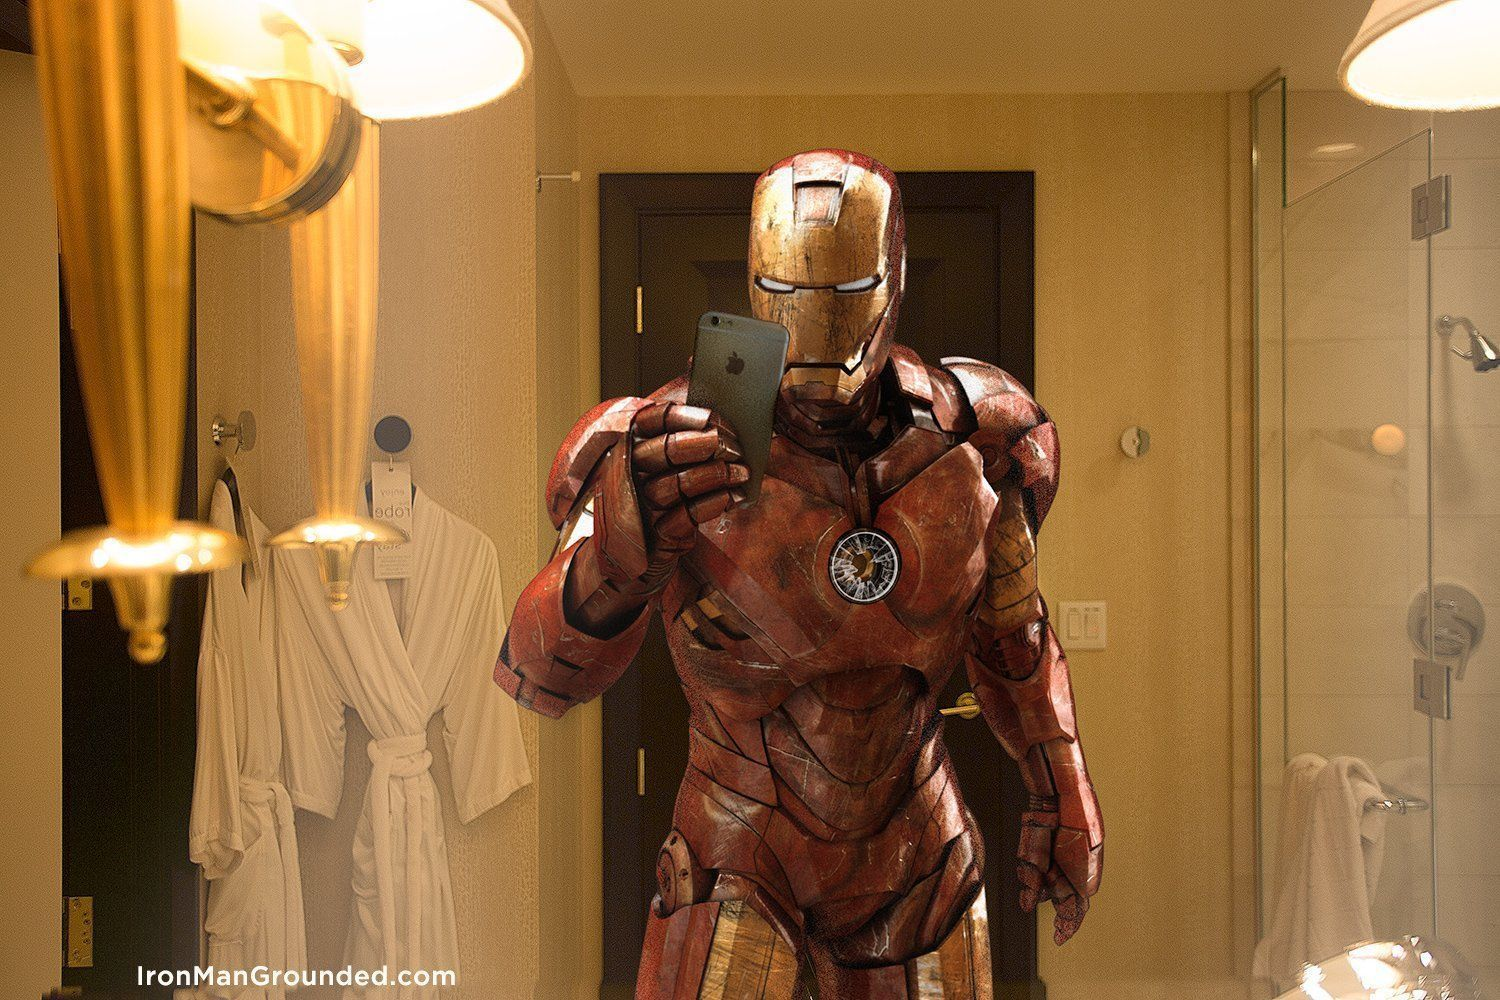 iron_man_grounded_selfie